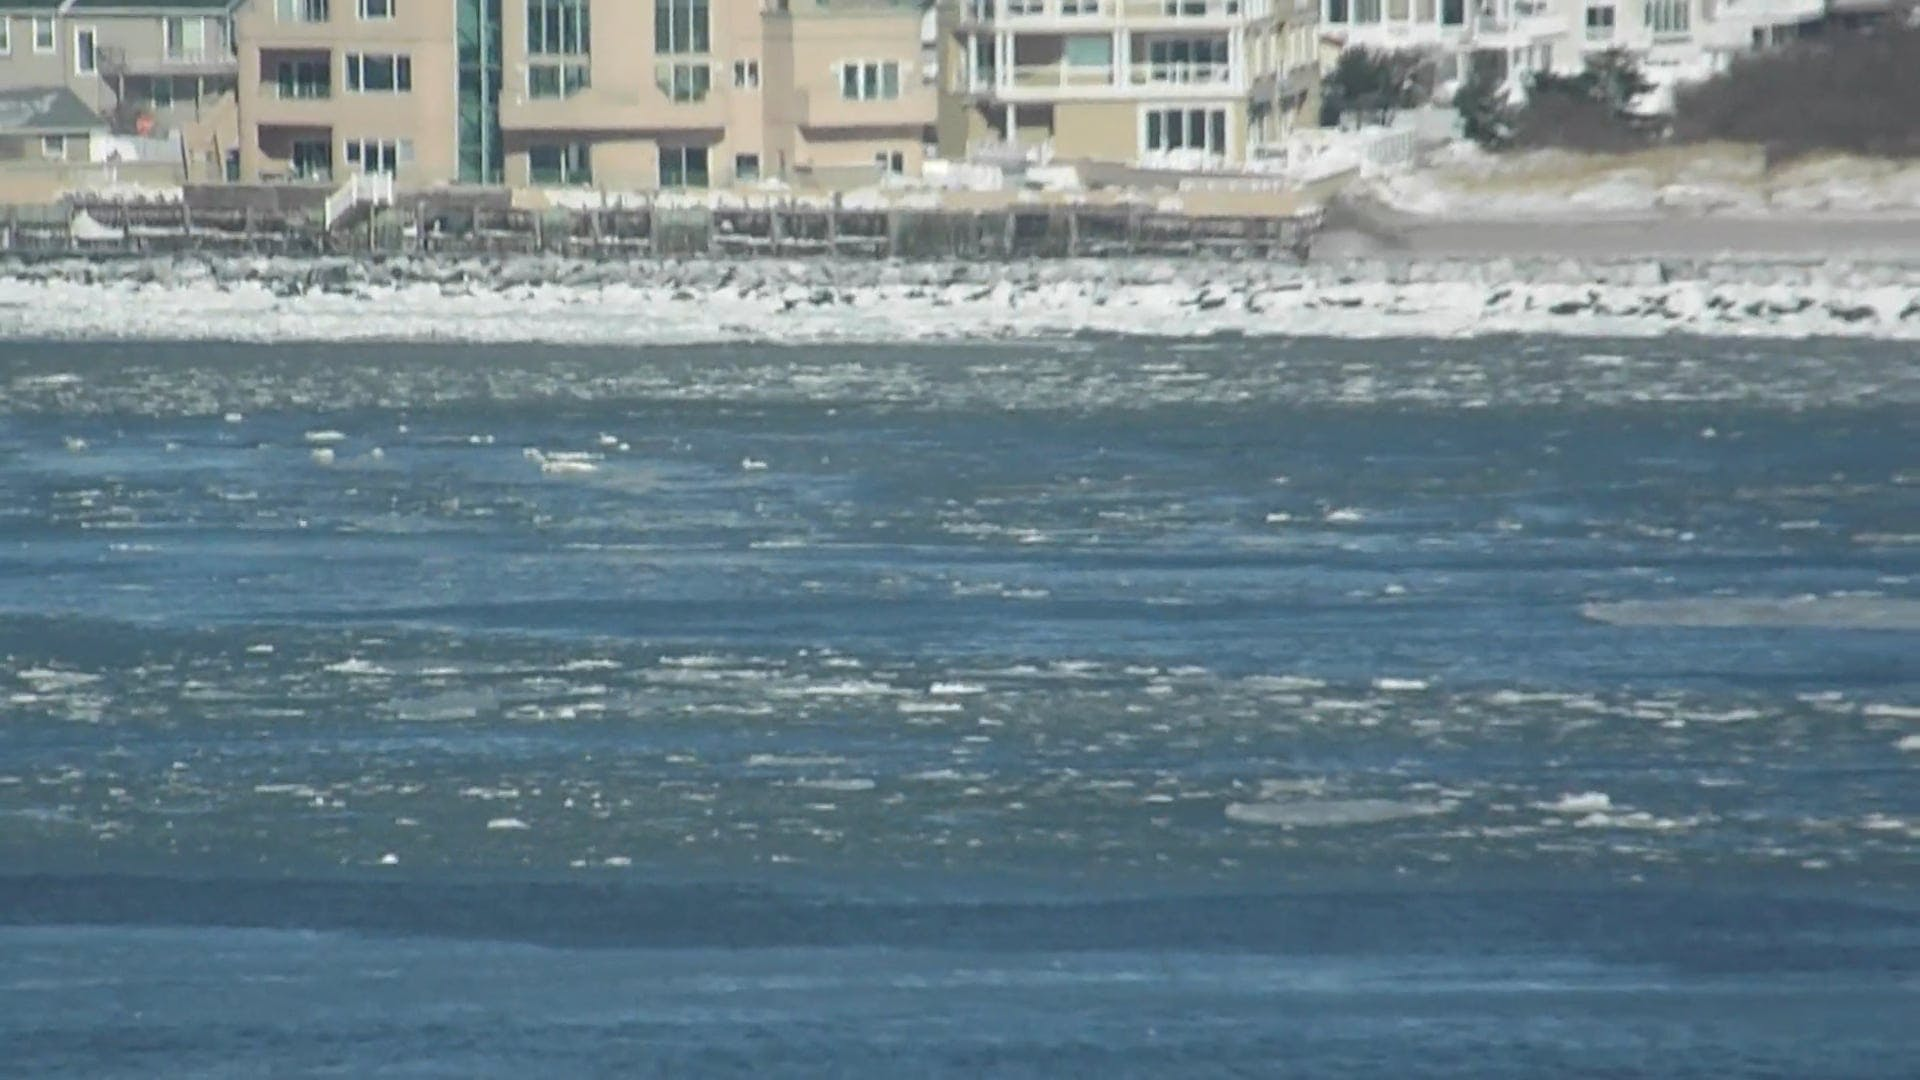 Ice Melting In The River